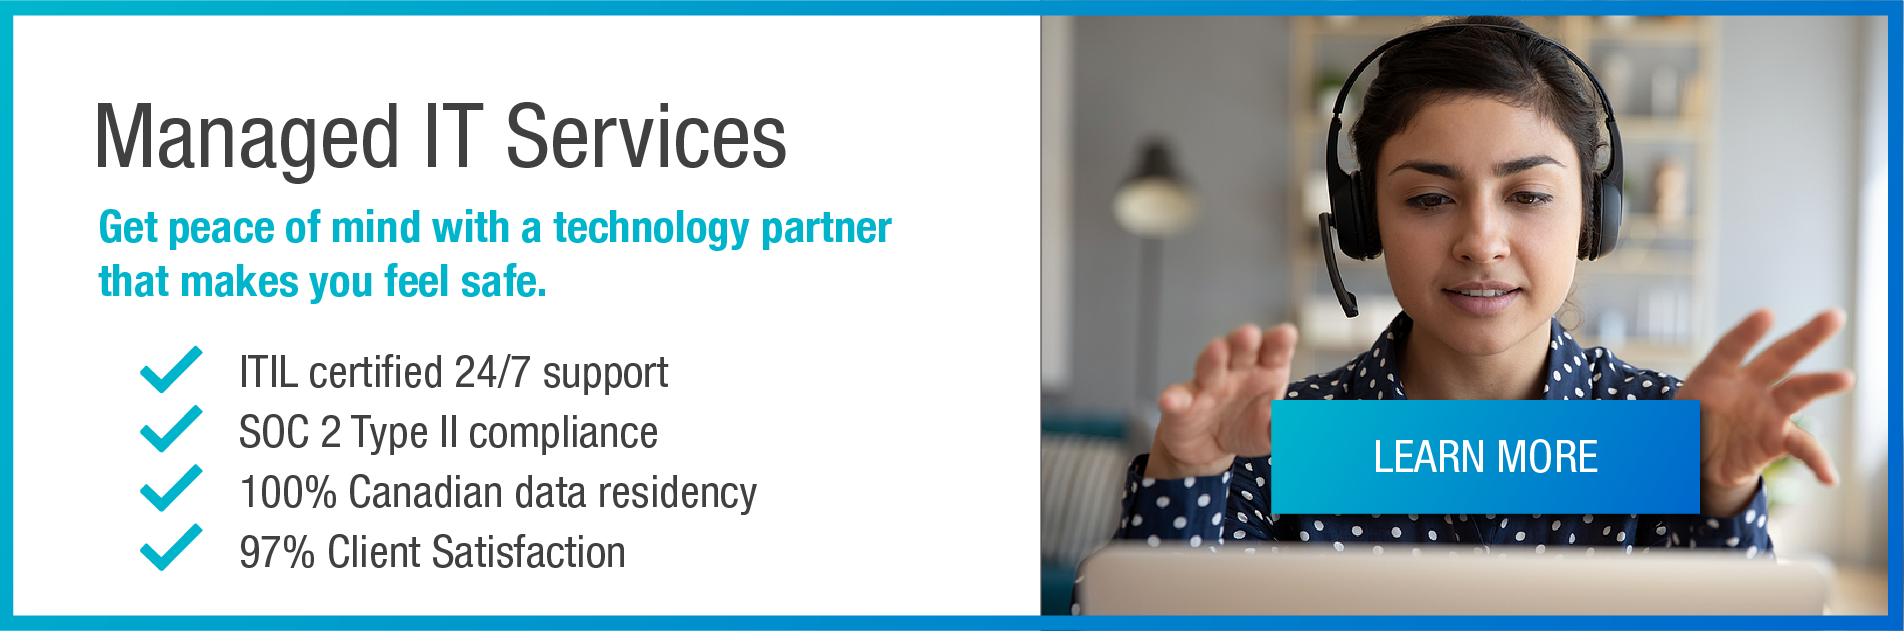 Managed IT Services. Get peace of mind with a technology partner that makes you feel safe.